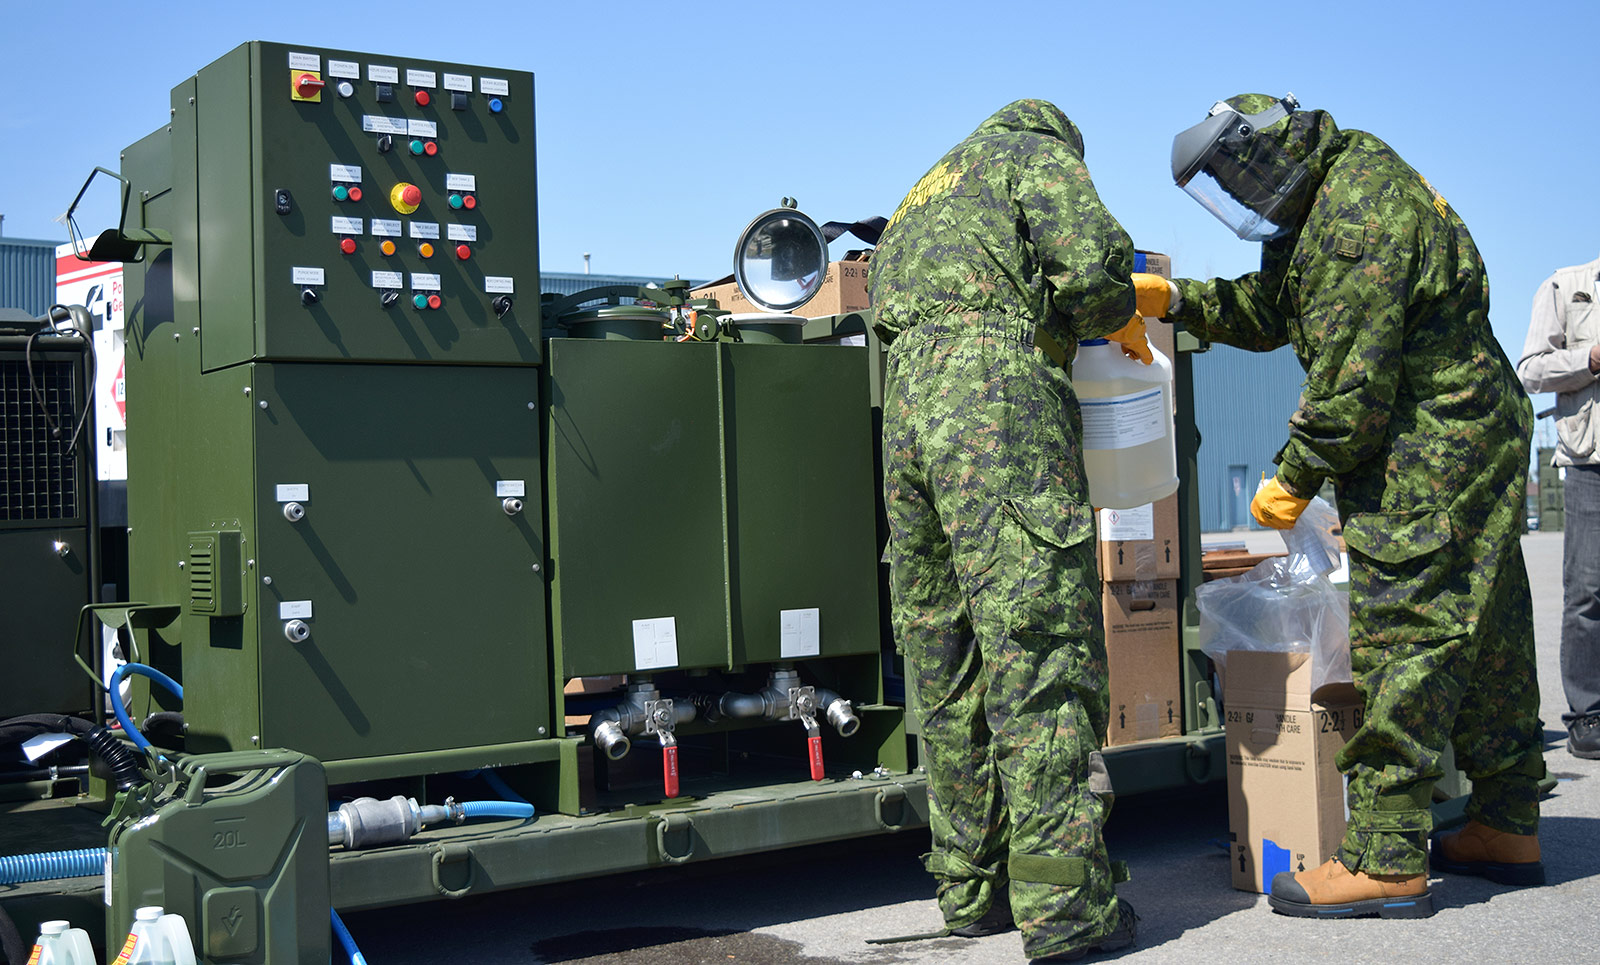 CBRN Decontamination System